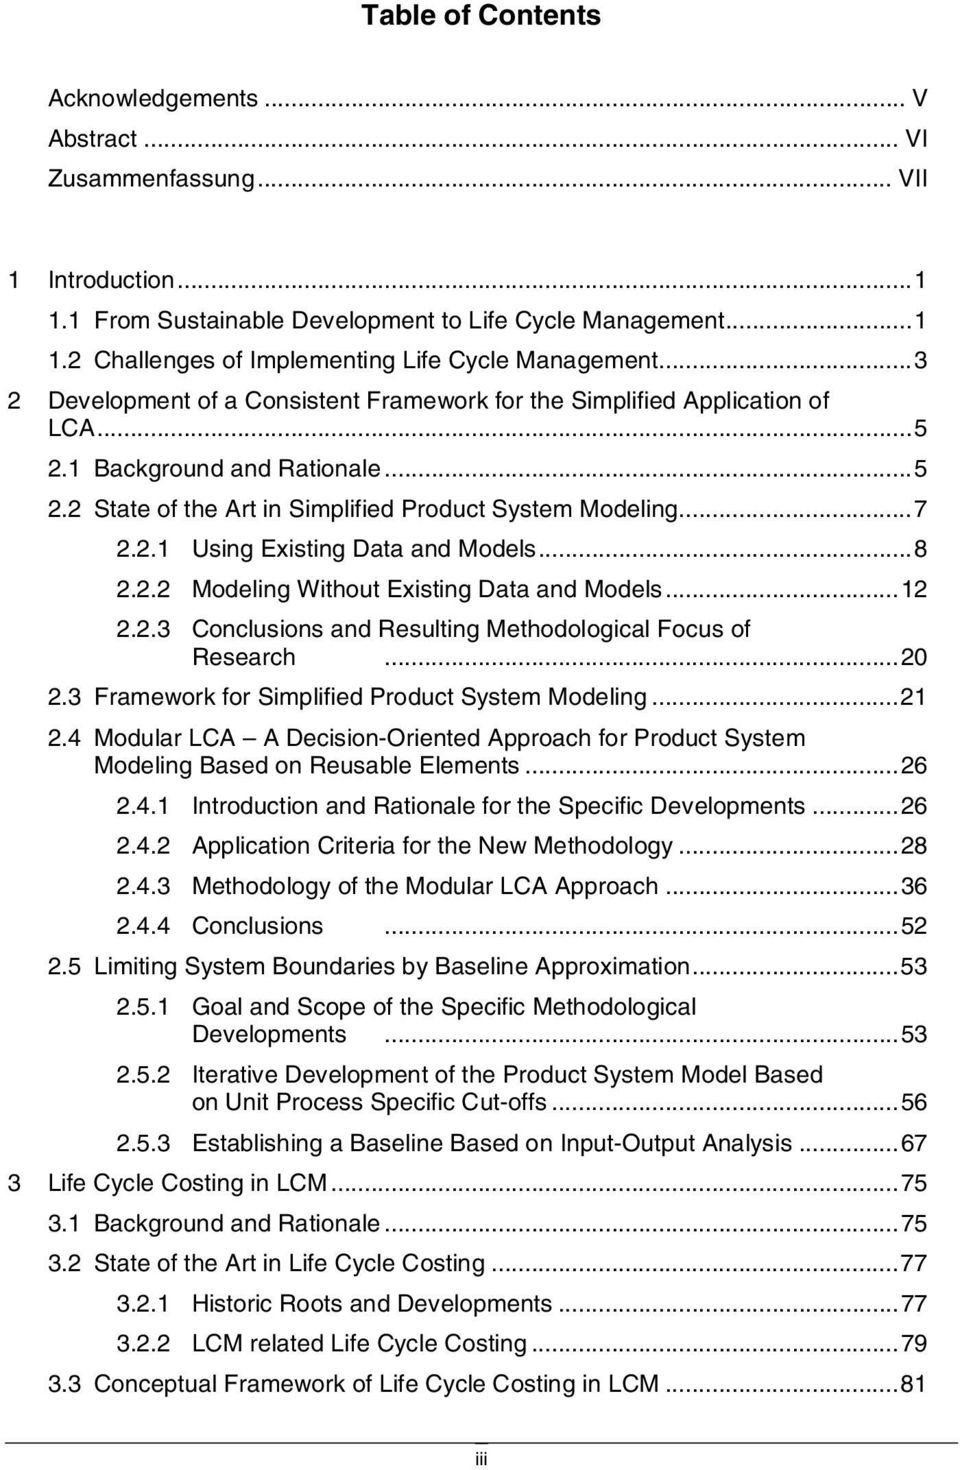 ..8 2.2.2 Modeling Without Existing Data and Models...12 2.2.3 Conclusions and Resulting Methodological Focus of Research...20 2.3 Framework for Simplified Product System Modeling...21 2.